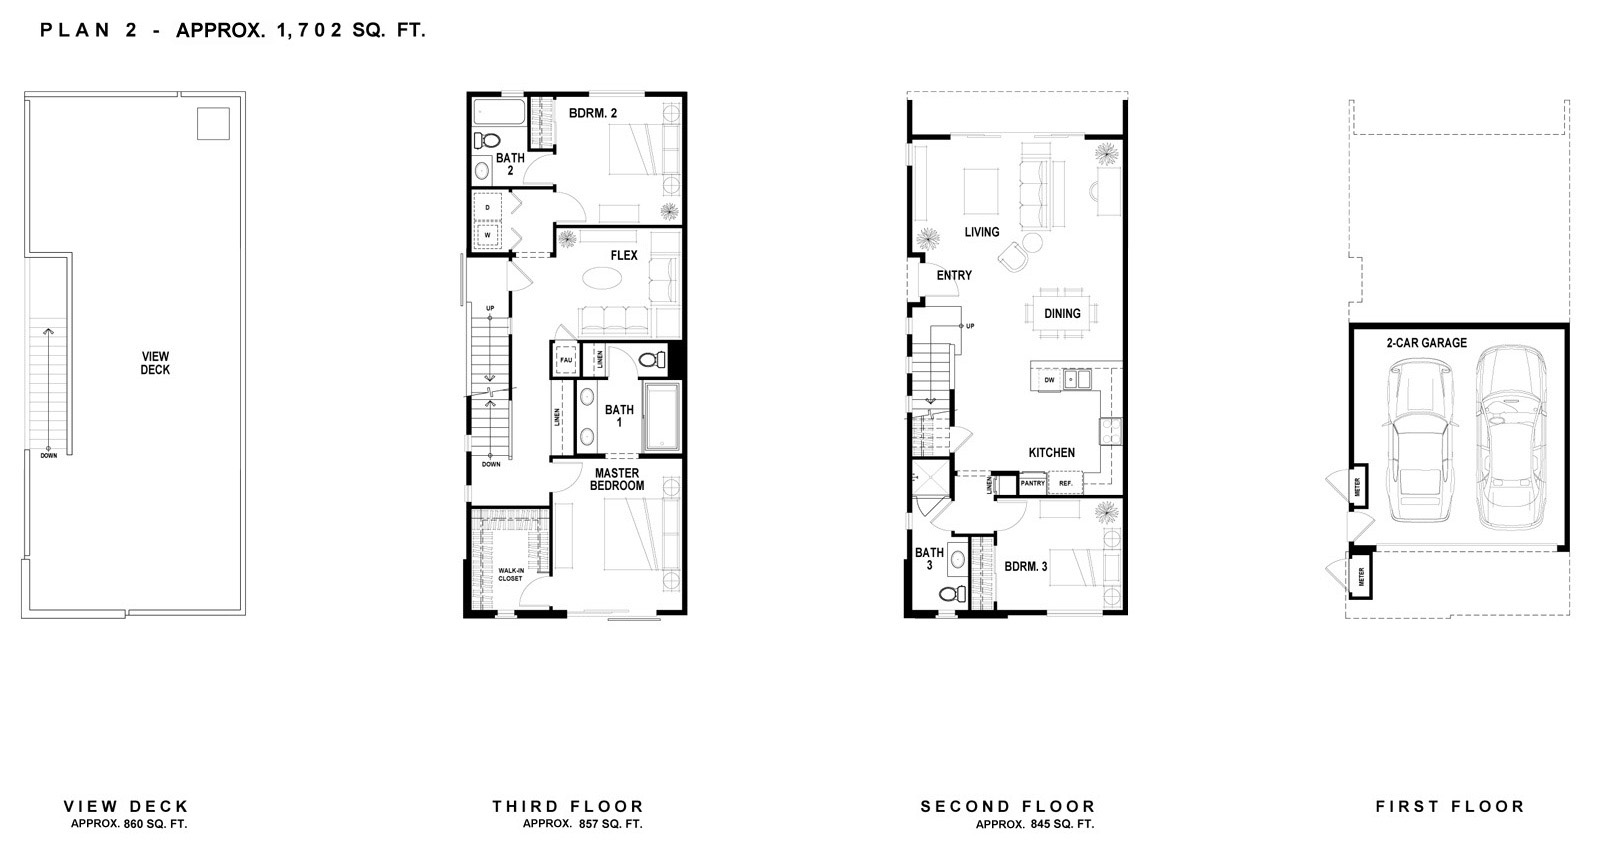 ciel_floor_plan_2-approx_fixed.jpg